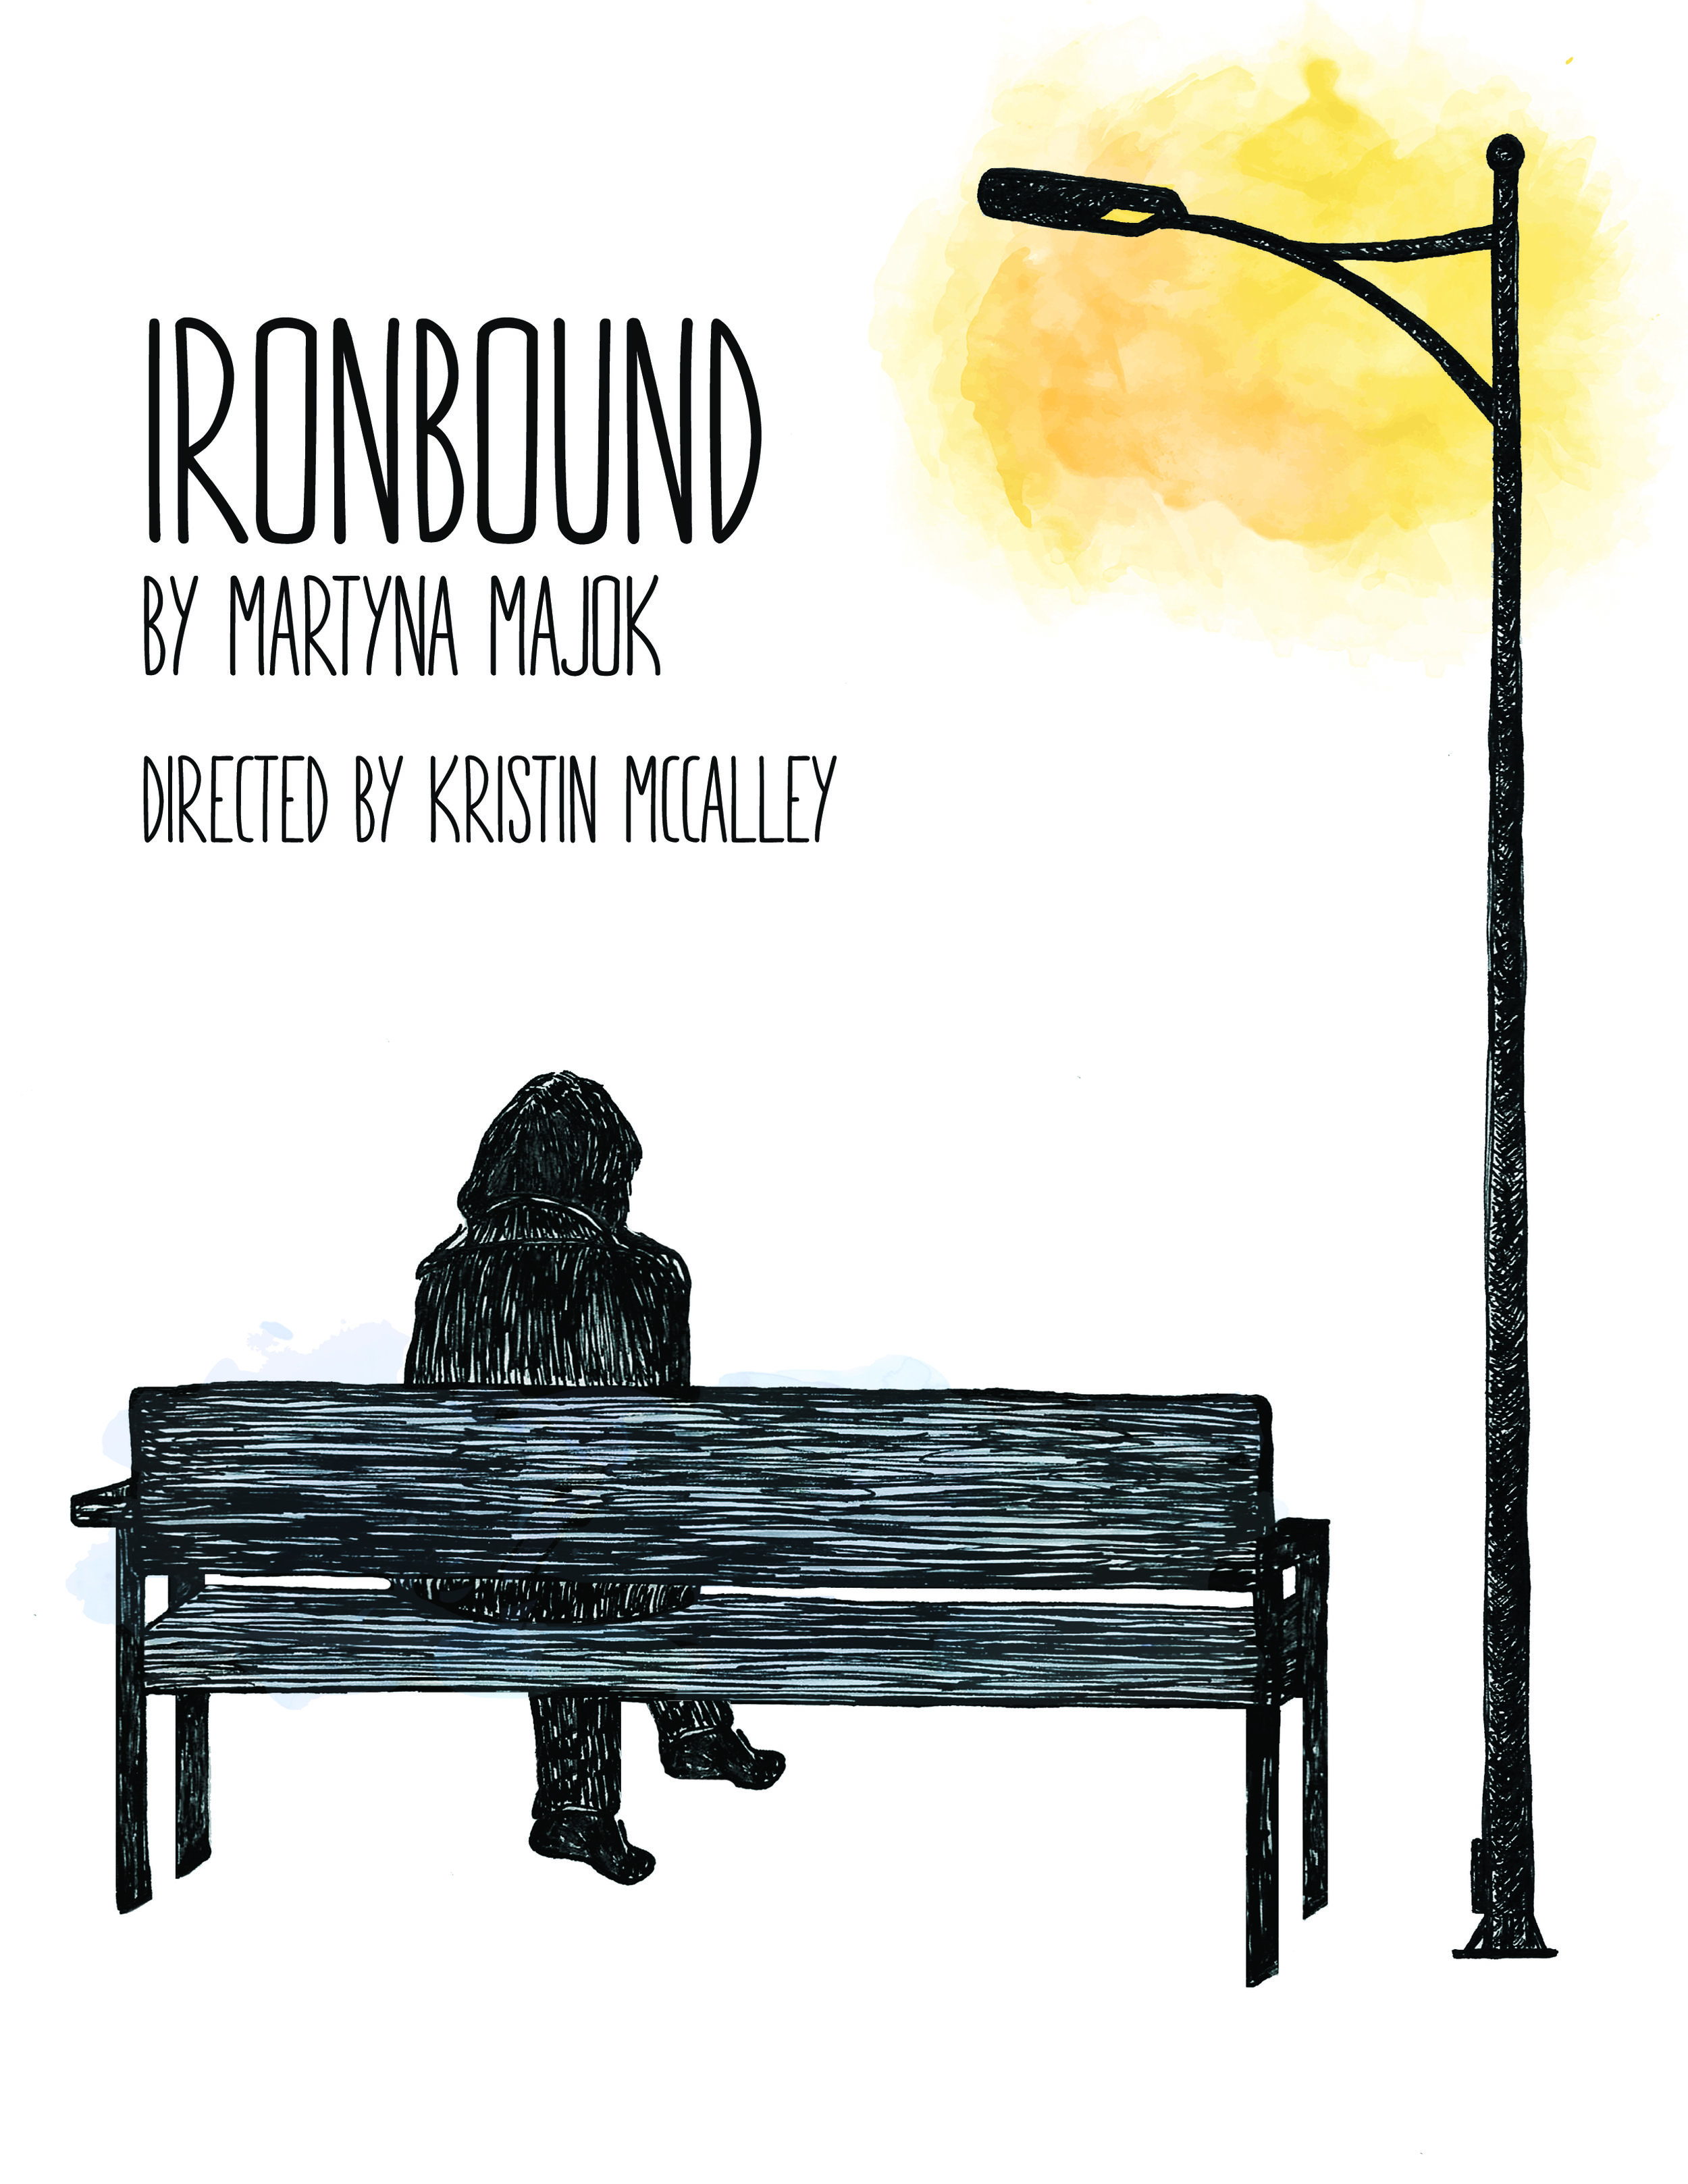 ironbound - January 26 – February 2, 2019Director: Kristin McCalleyFeaturing: Joe Mobley, Gerald Pitts, Tamara Todres, Ted Welch*Stage Manager/Intimacy Choreographer/Assistant Director: Amanda CardSound Design: Tasha FrenchCostume Design: Jessica AndersonProps: Chelsey FullerLighting and Scenic Design: Clayton Landiss*Member of Actors' Equity Association